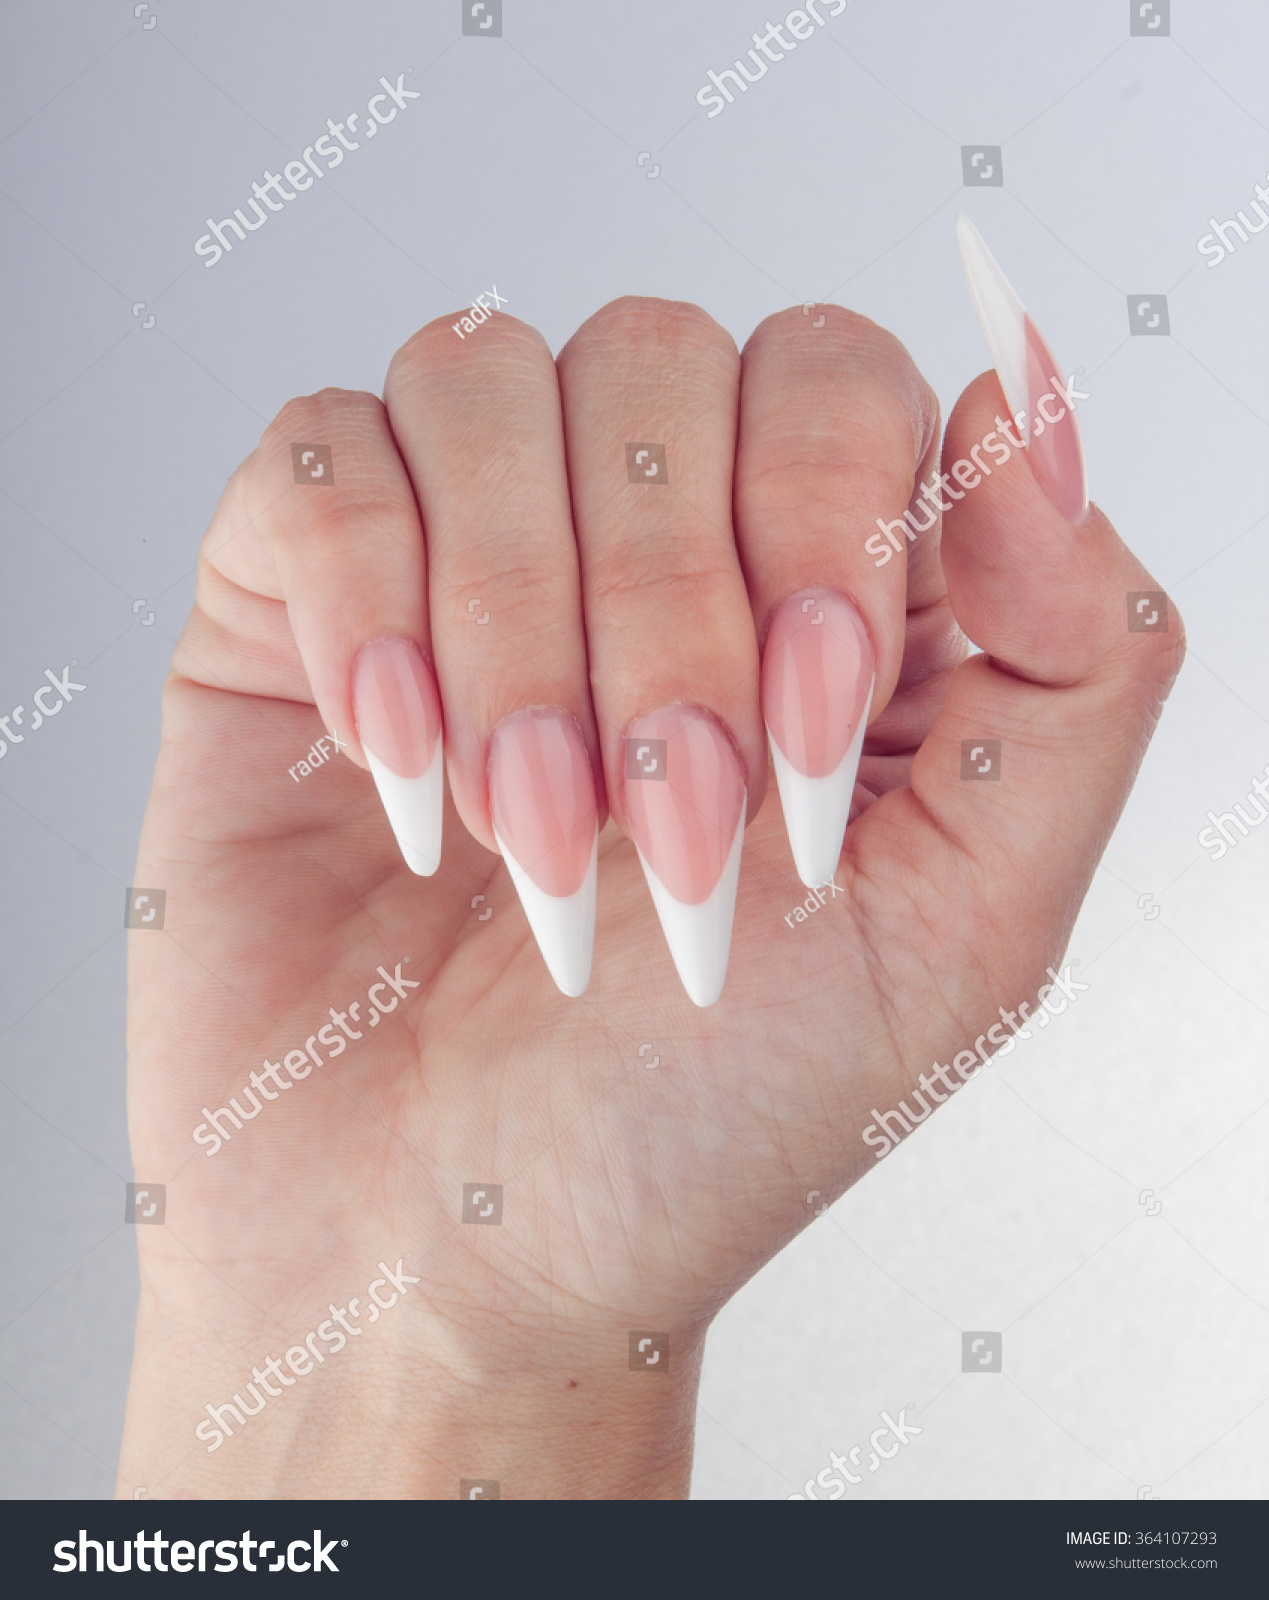 Painted Simple Extreme Long Nails Hands Stock Photo (Royalty Free ...